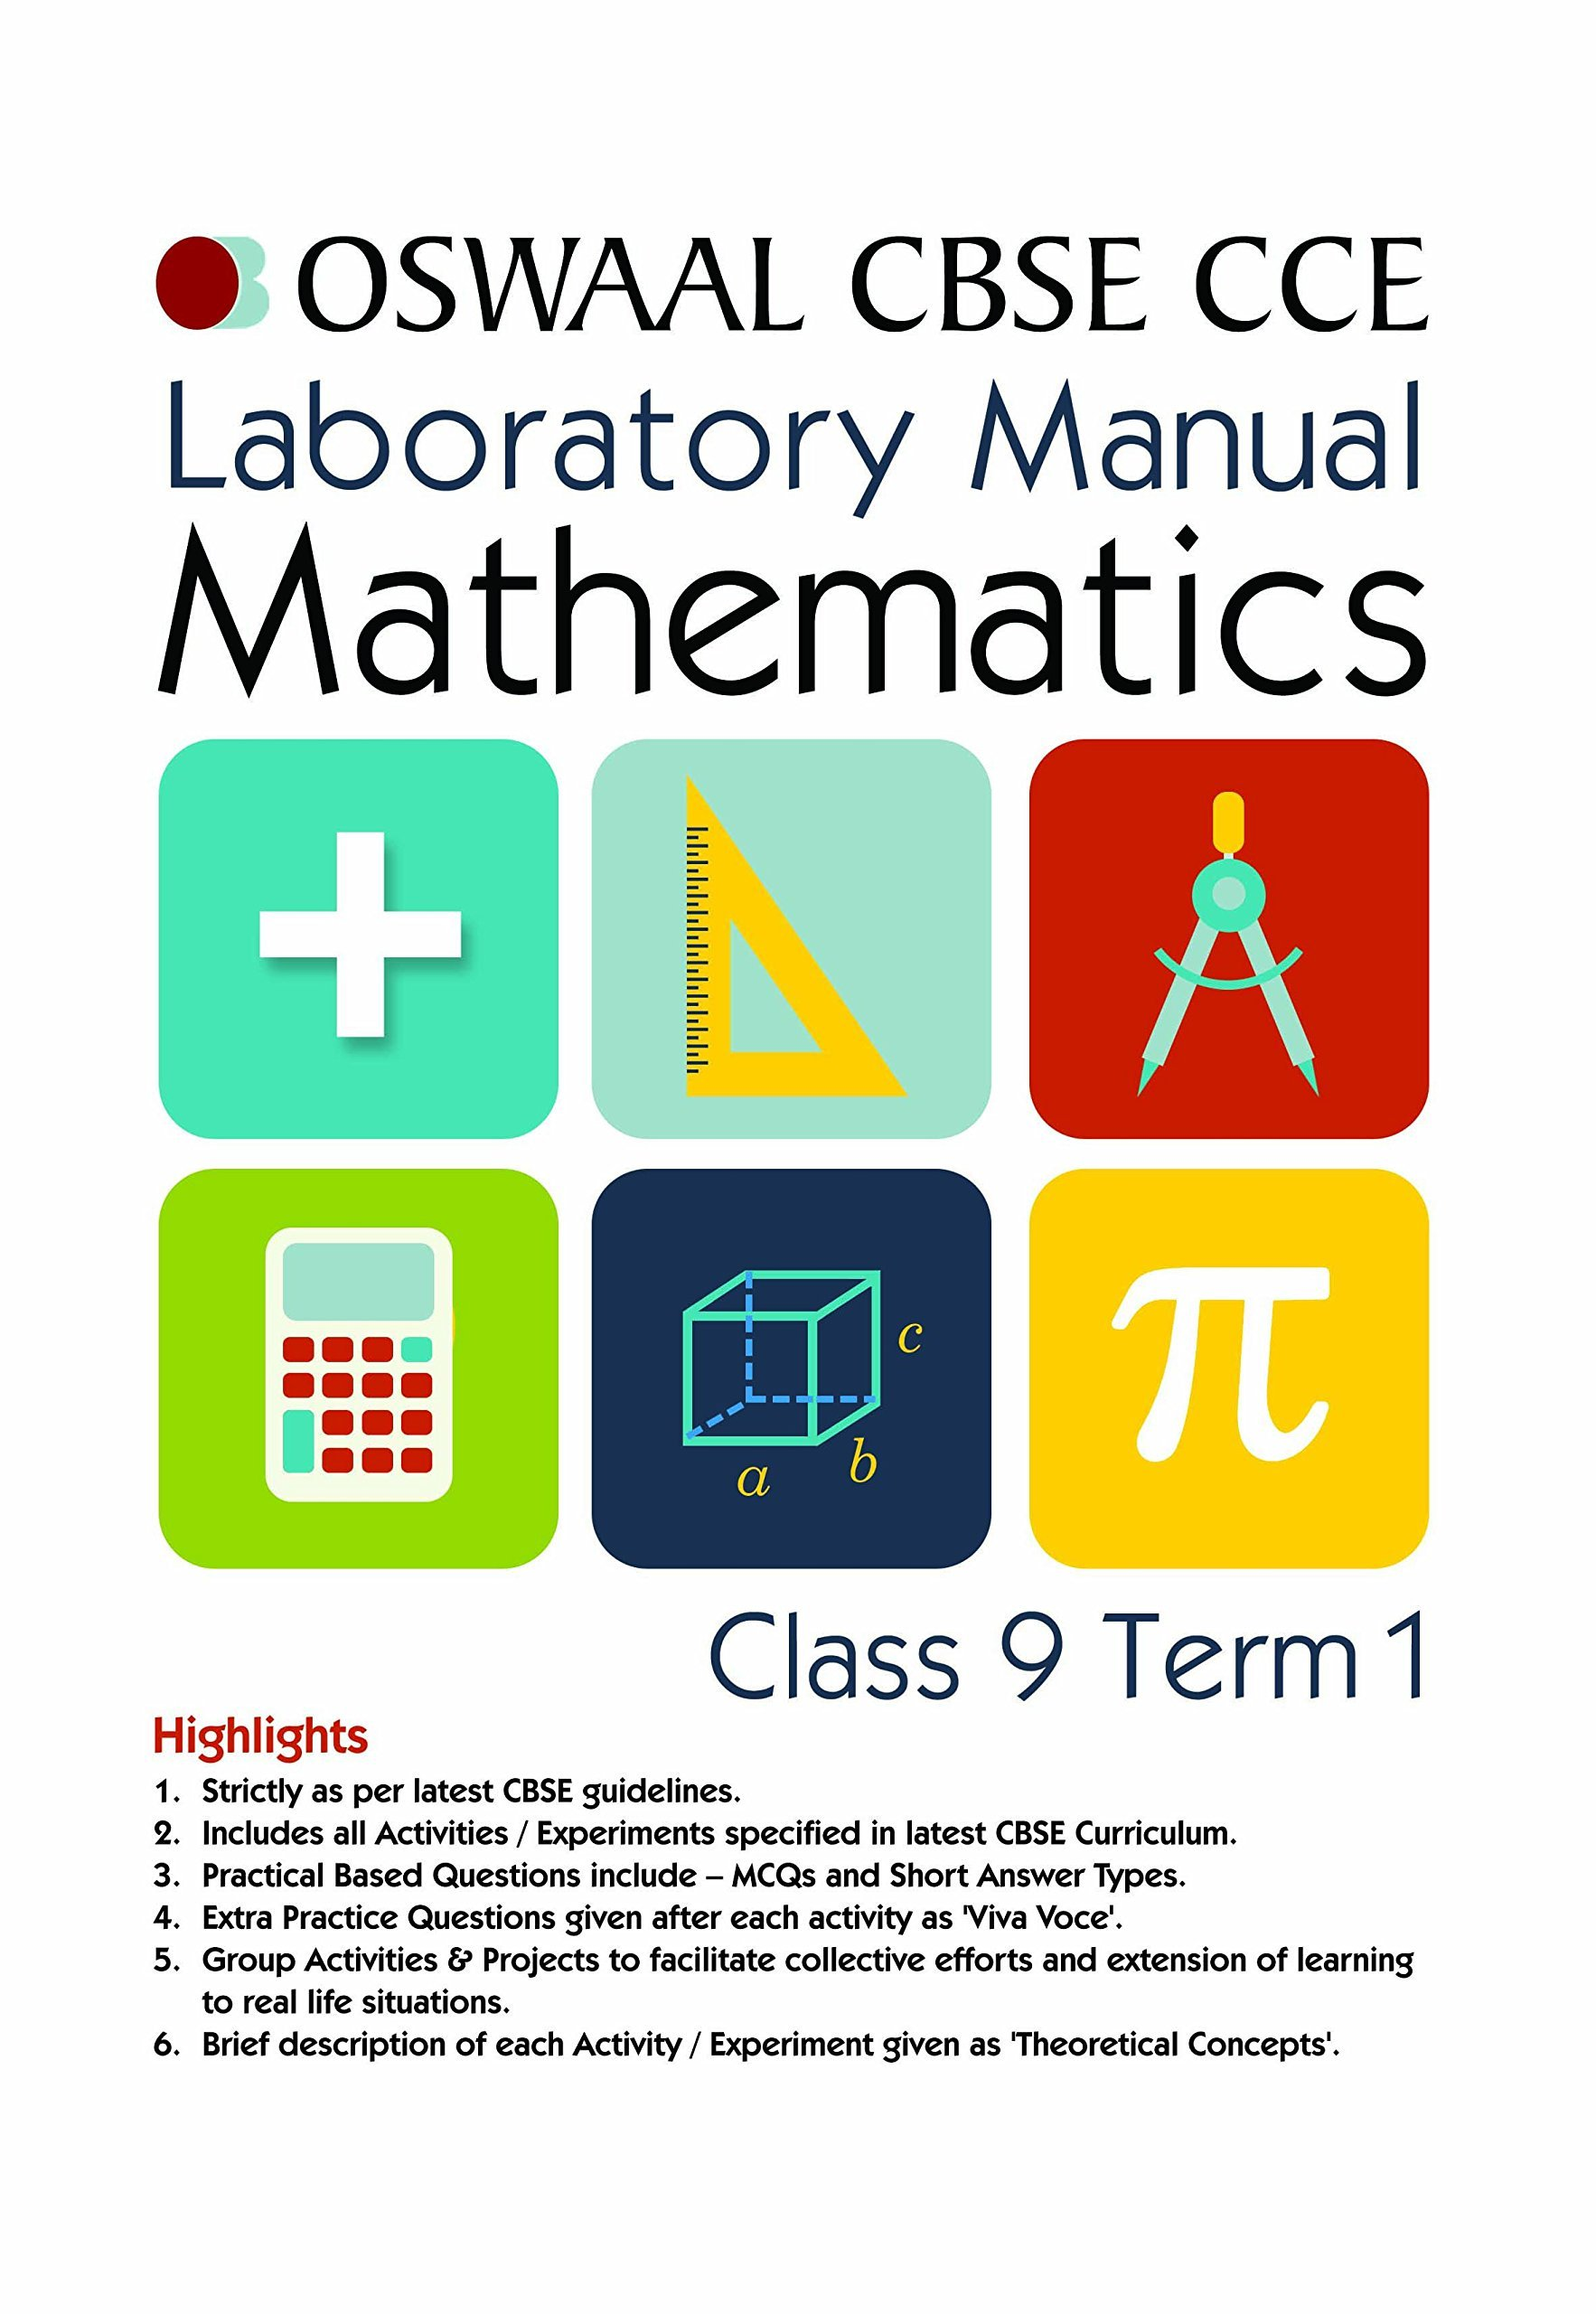 Buy Oswaal CBSE CCE Laboratory Manual for Class 9 Term I (April to  September) Mathematics (Old Edition) Book Online at Low Prices in India |  Oswaal CBSE CCE ...